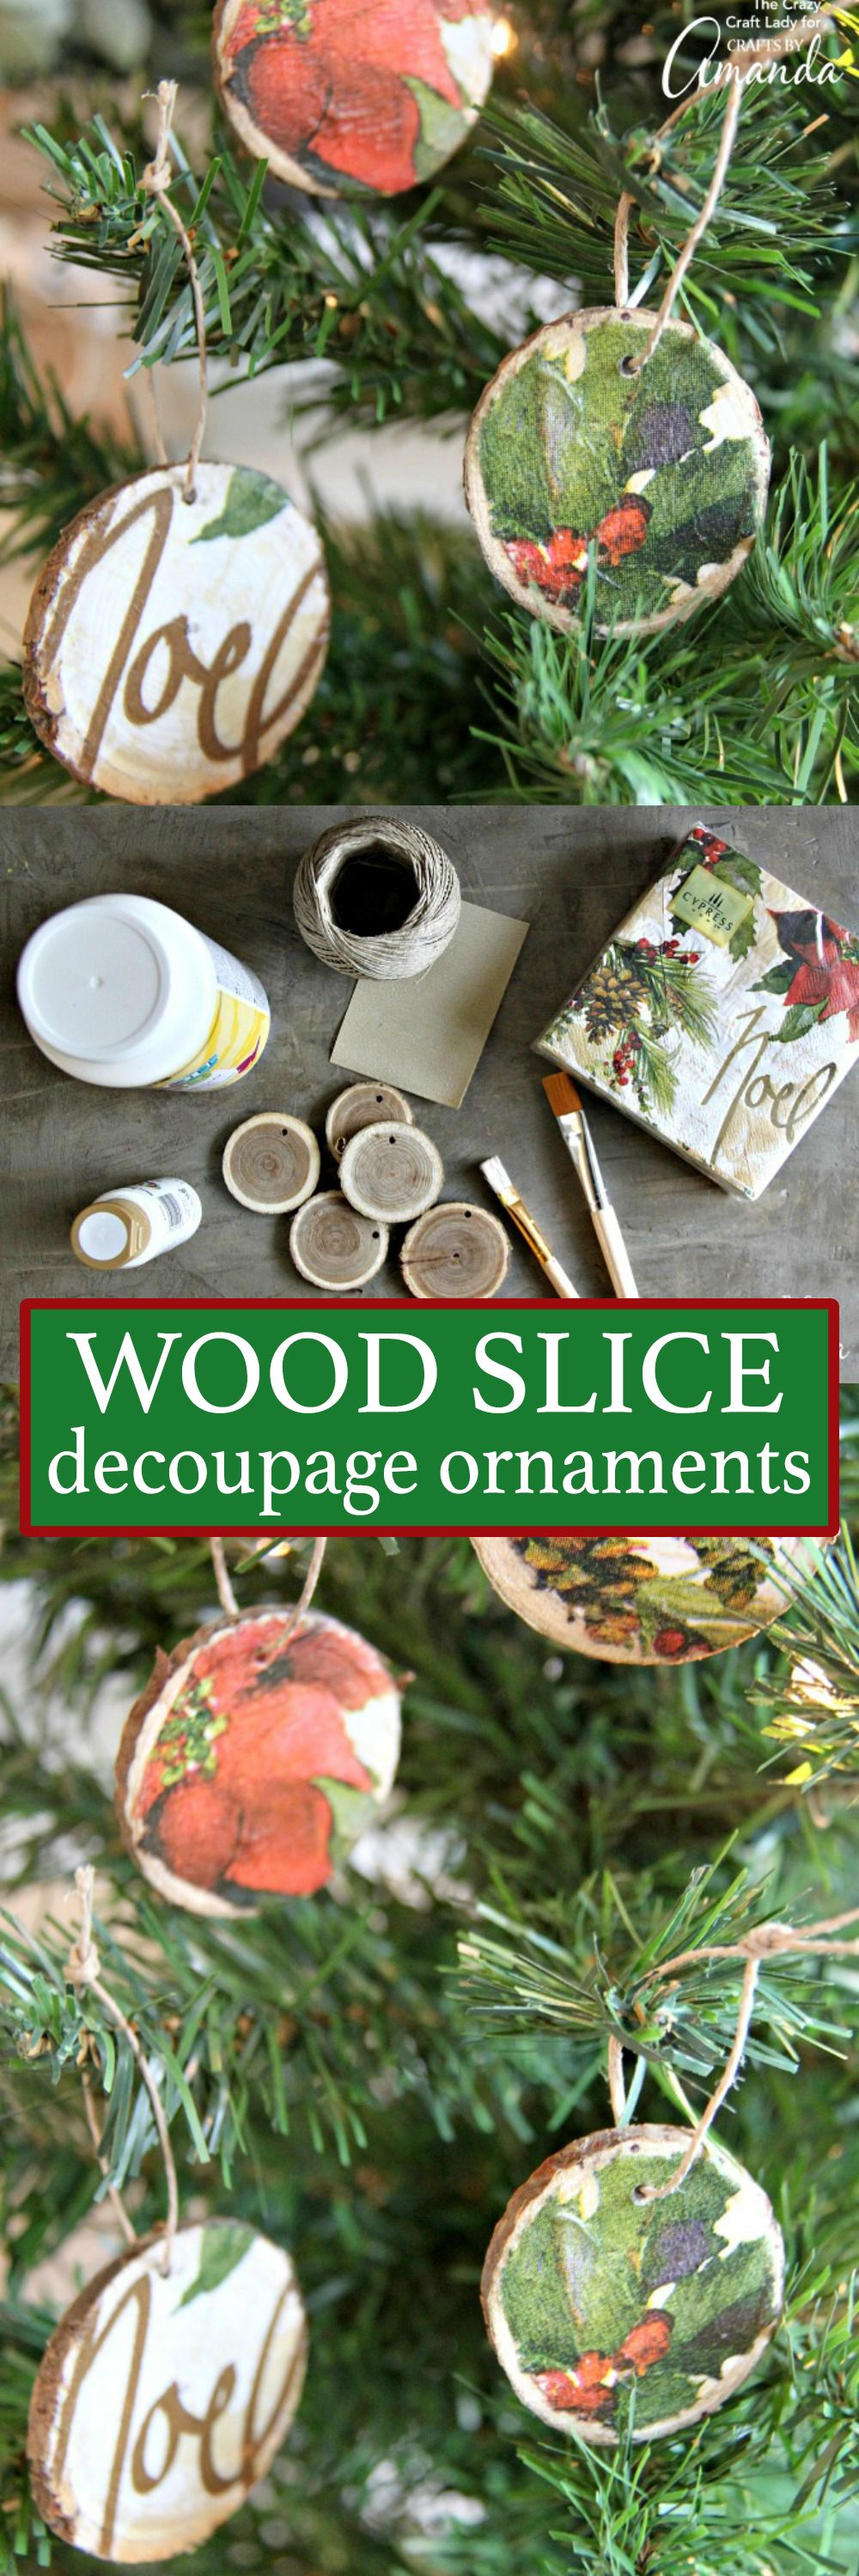 These Decoupage Wood Slice Ornaments Are An Easy Way To Make Your Own Tree Ornaments Use Paper Napki Christmas Ornaments Christmas Projects Diy Decoupage Wood